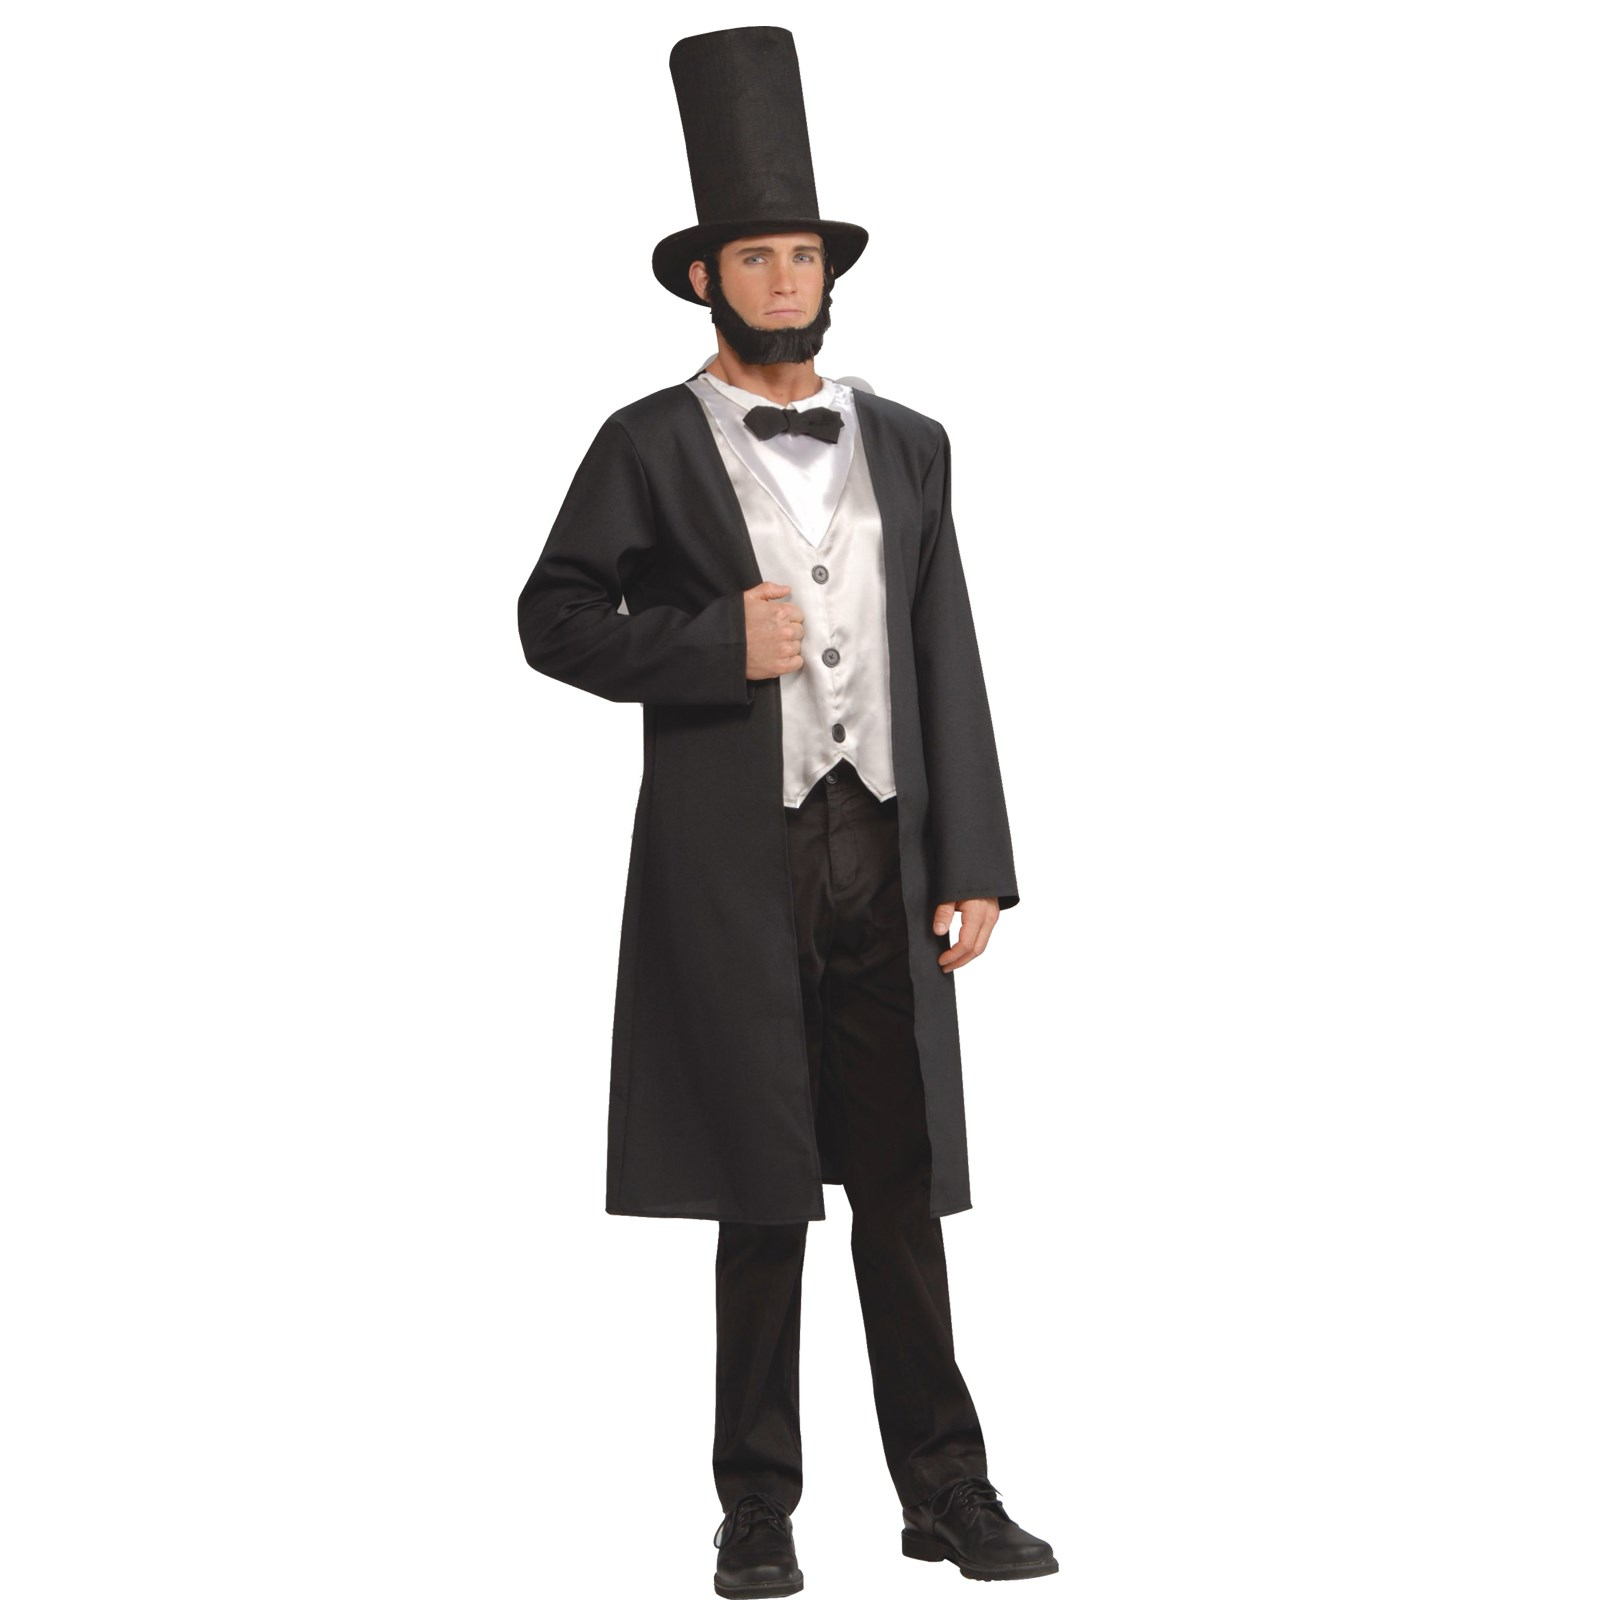 Image of Abe Lincoln Adult Costume